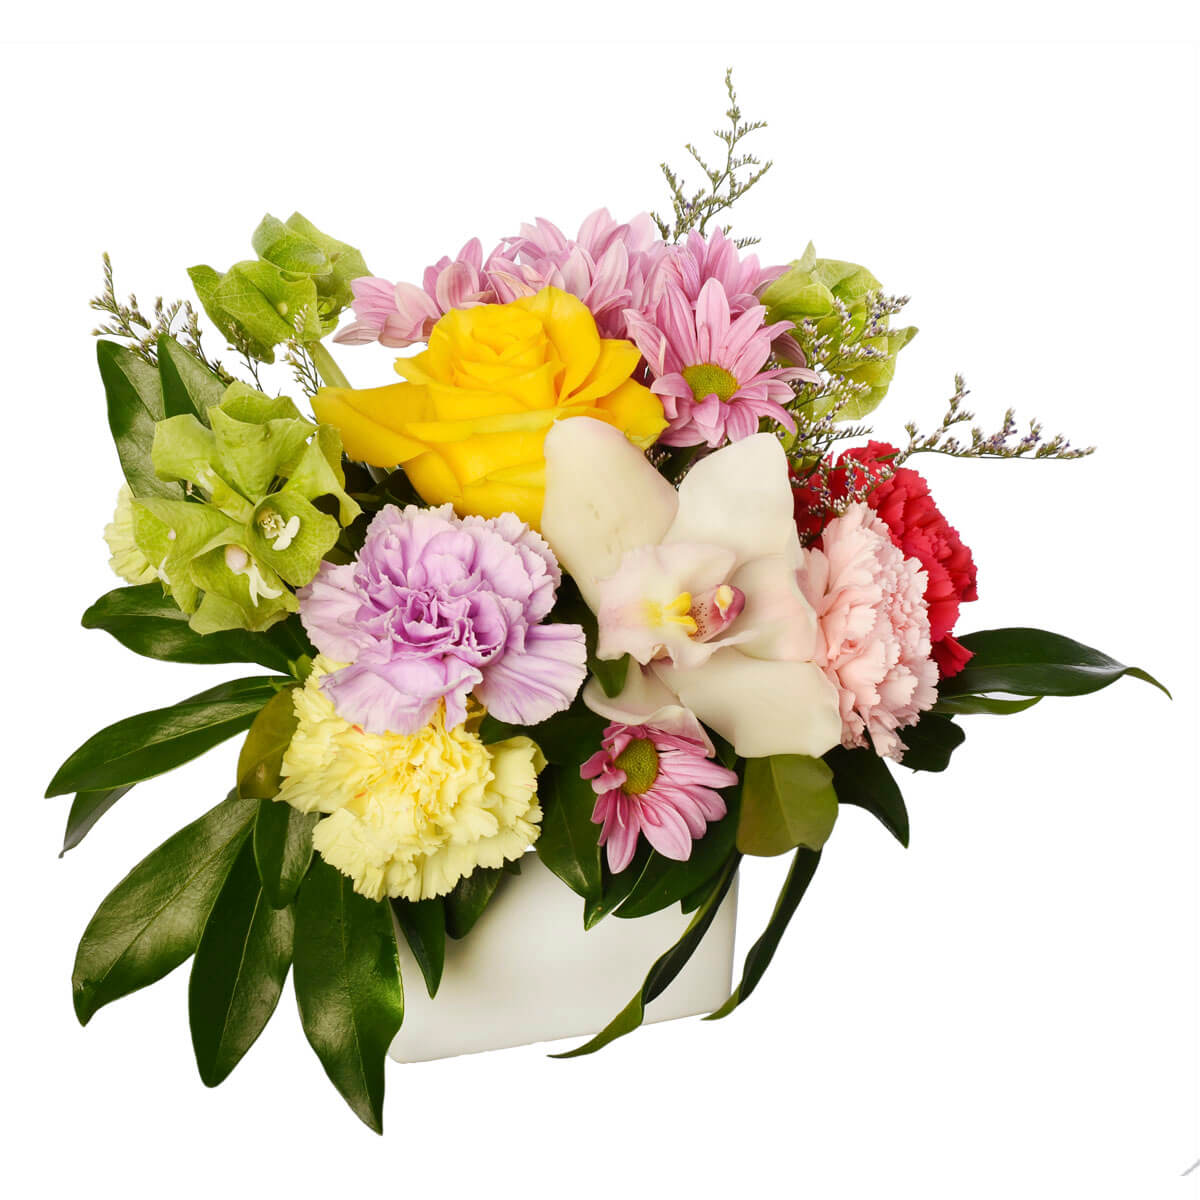 Mothers day flowers   Vancouver flower delivery from Adele Rae